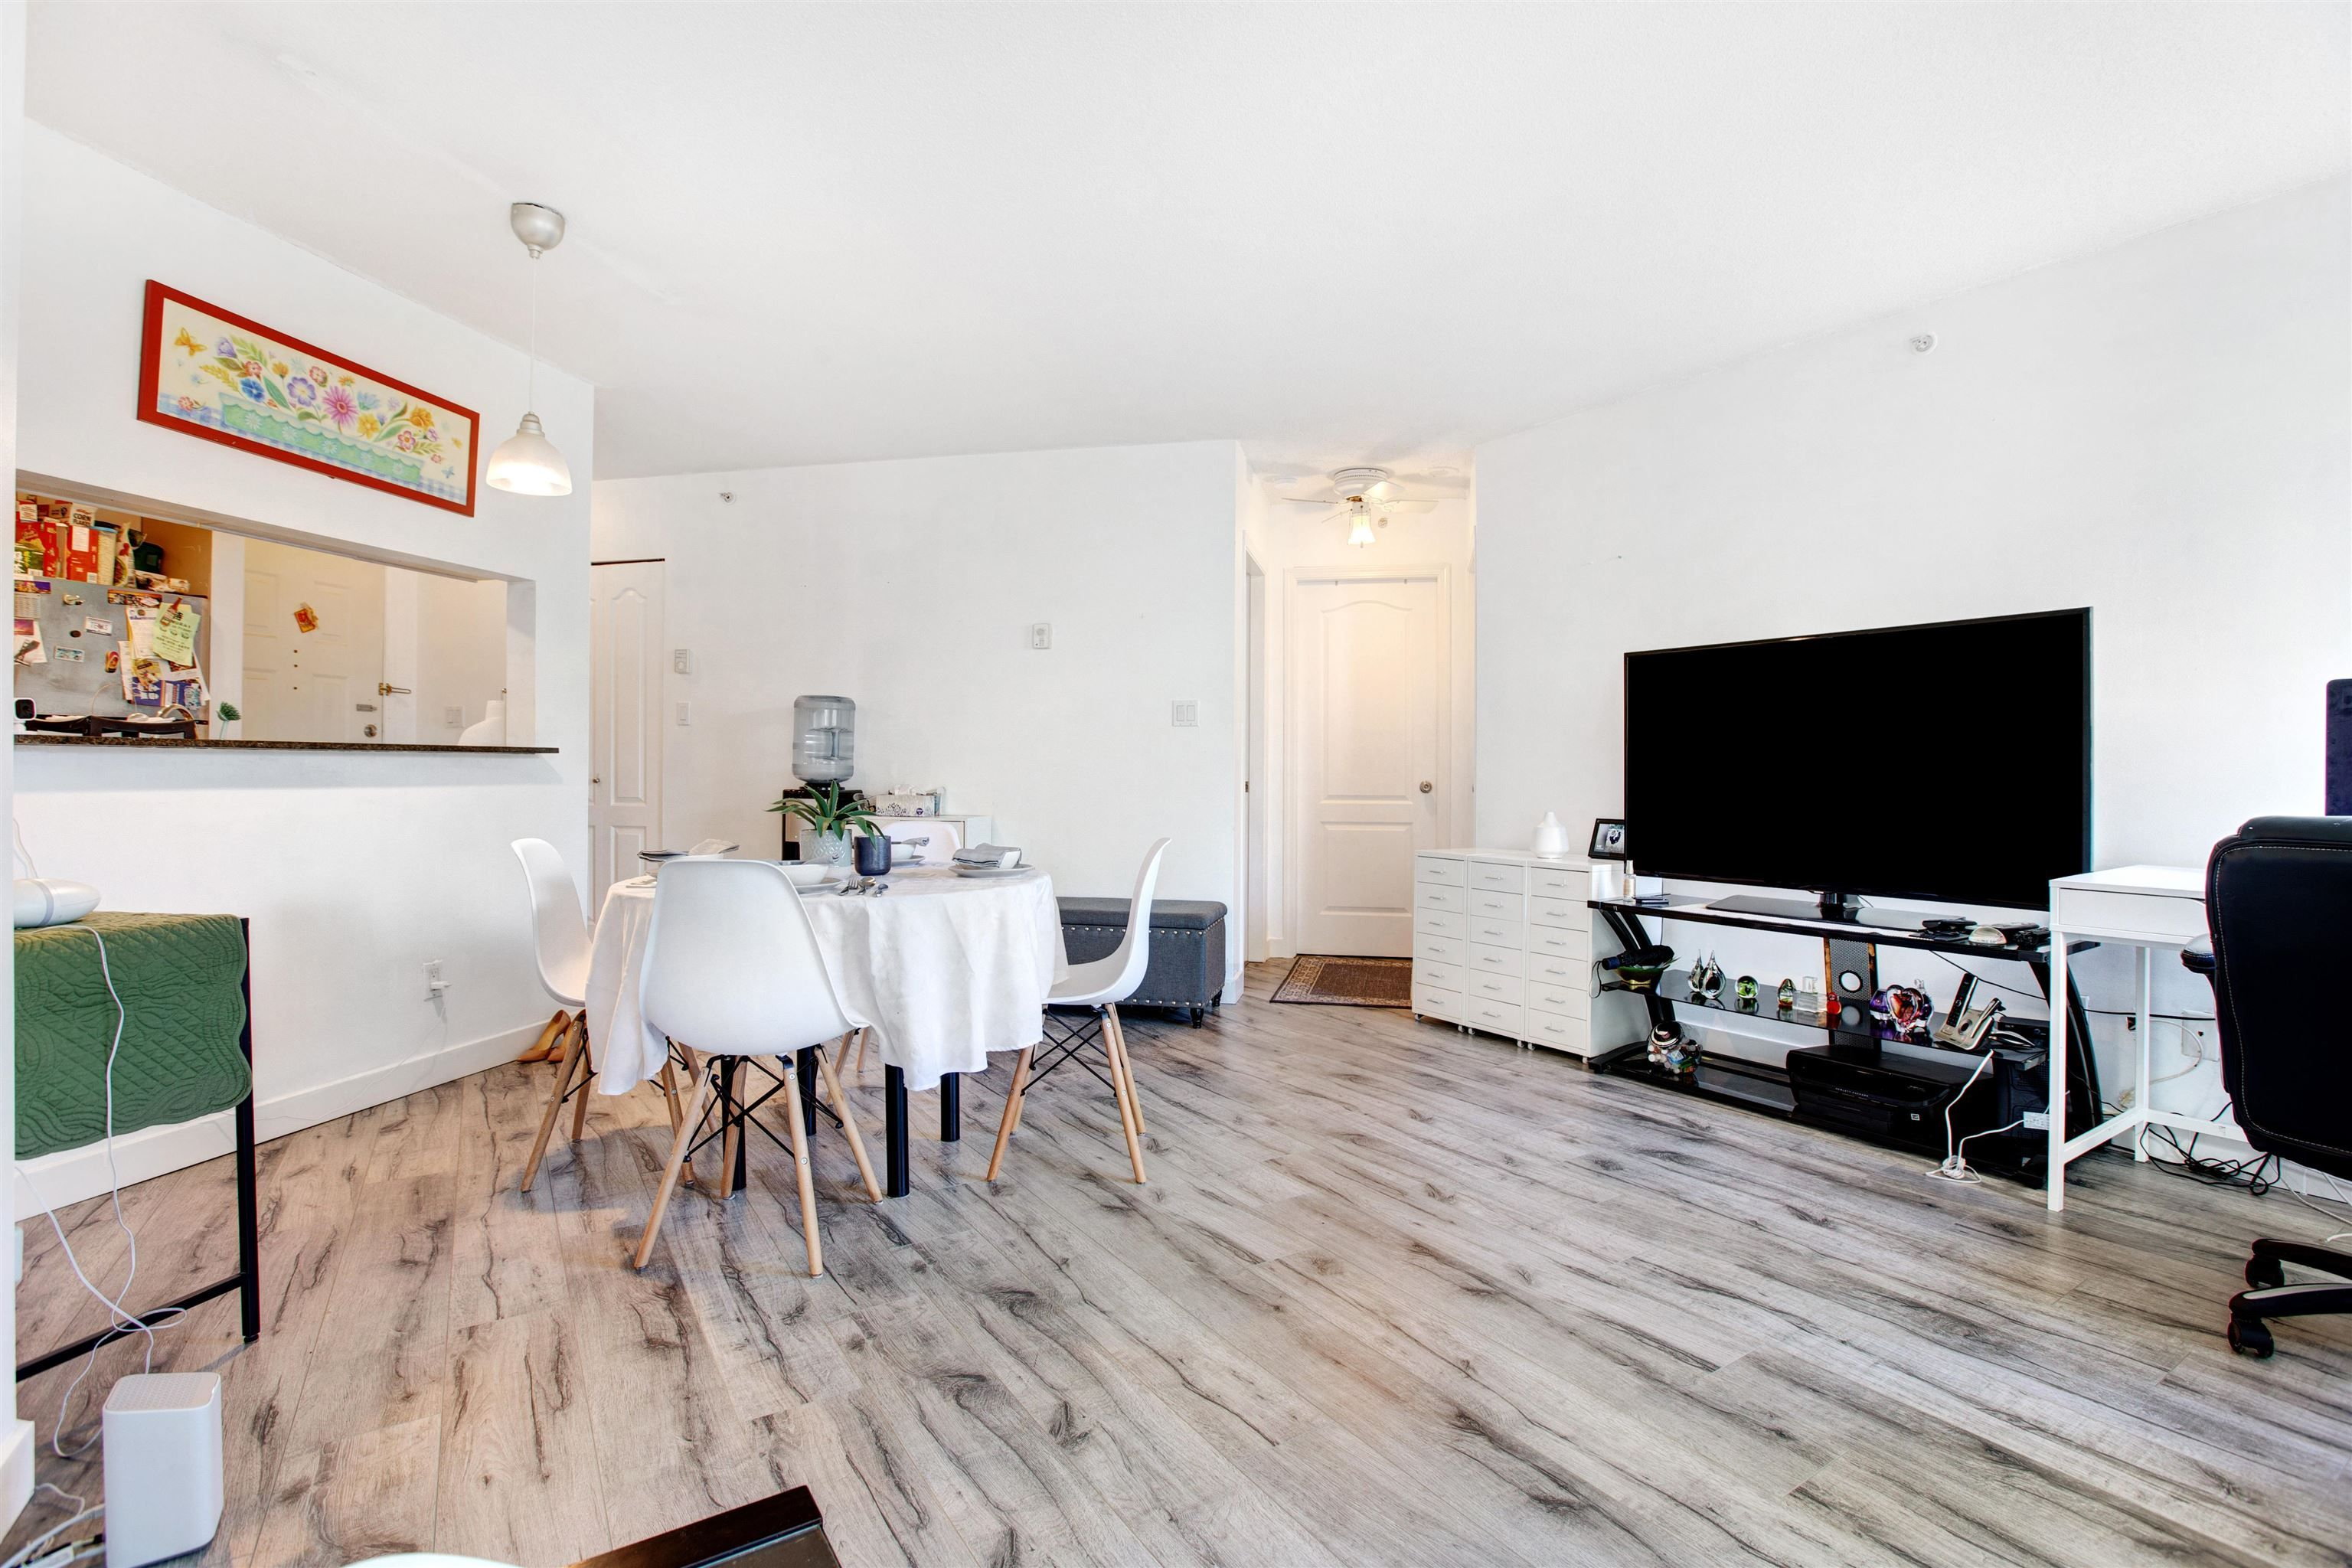 """Main Photo: 309 3455 ASCOT Place in Vancouver: Collingwood VE Condo for sale in """"QUEEN'S COURT"""" (Vancouver East)  : MLS®# R2613257"""